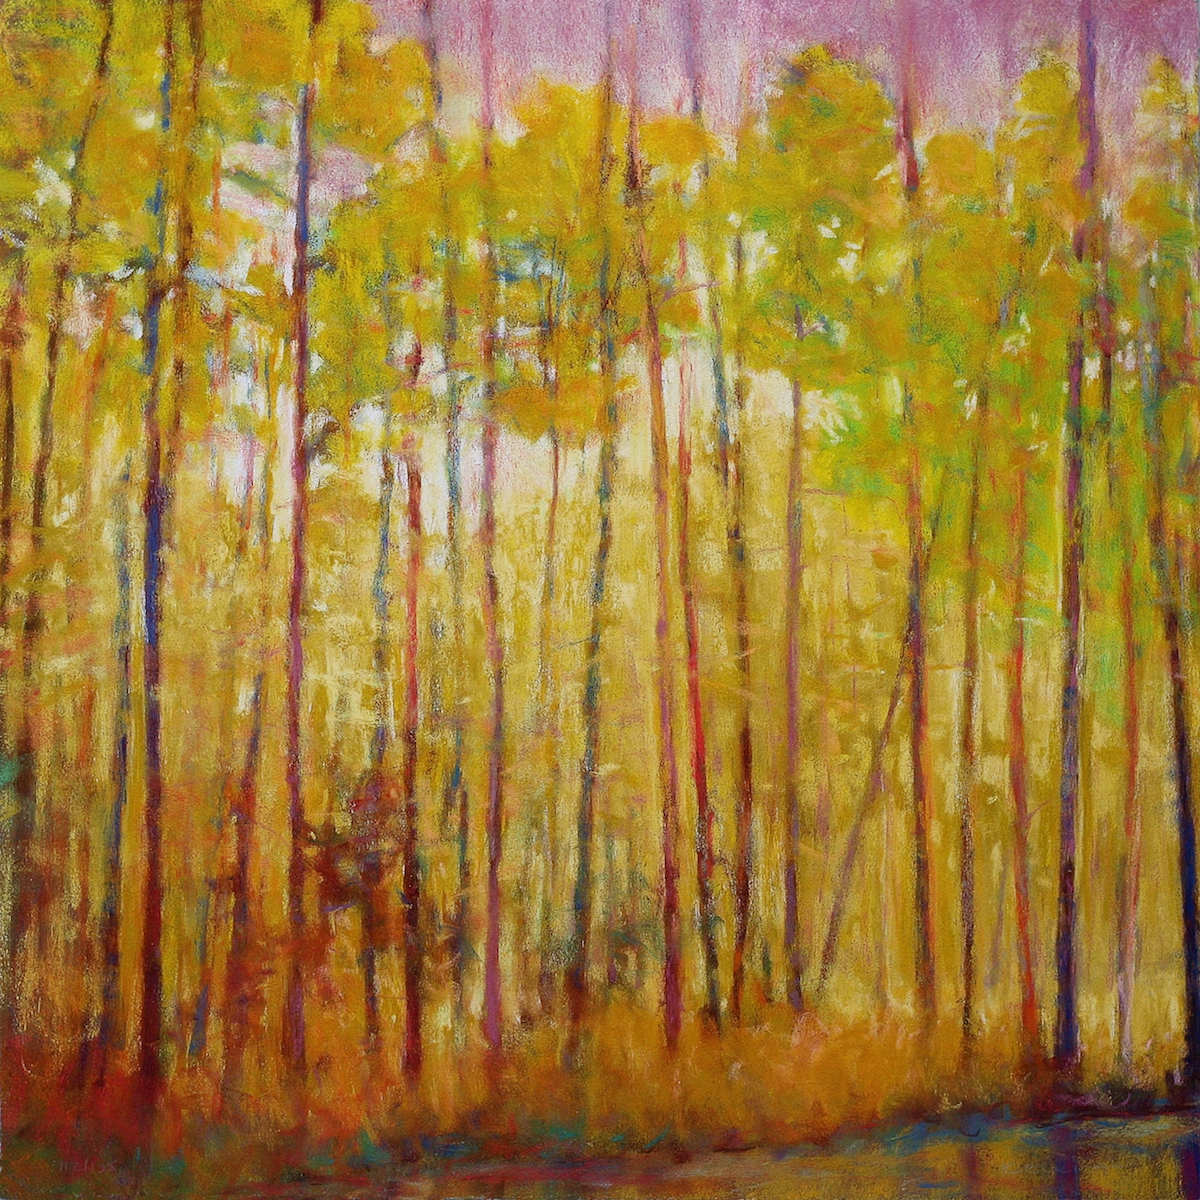 The Yellow Curtain Giclée by Ken Elliott, in the Gallery at Page Waterman